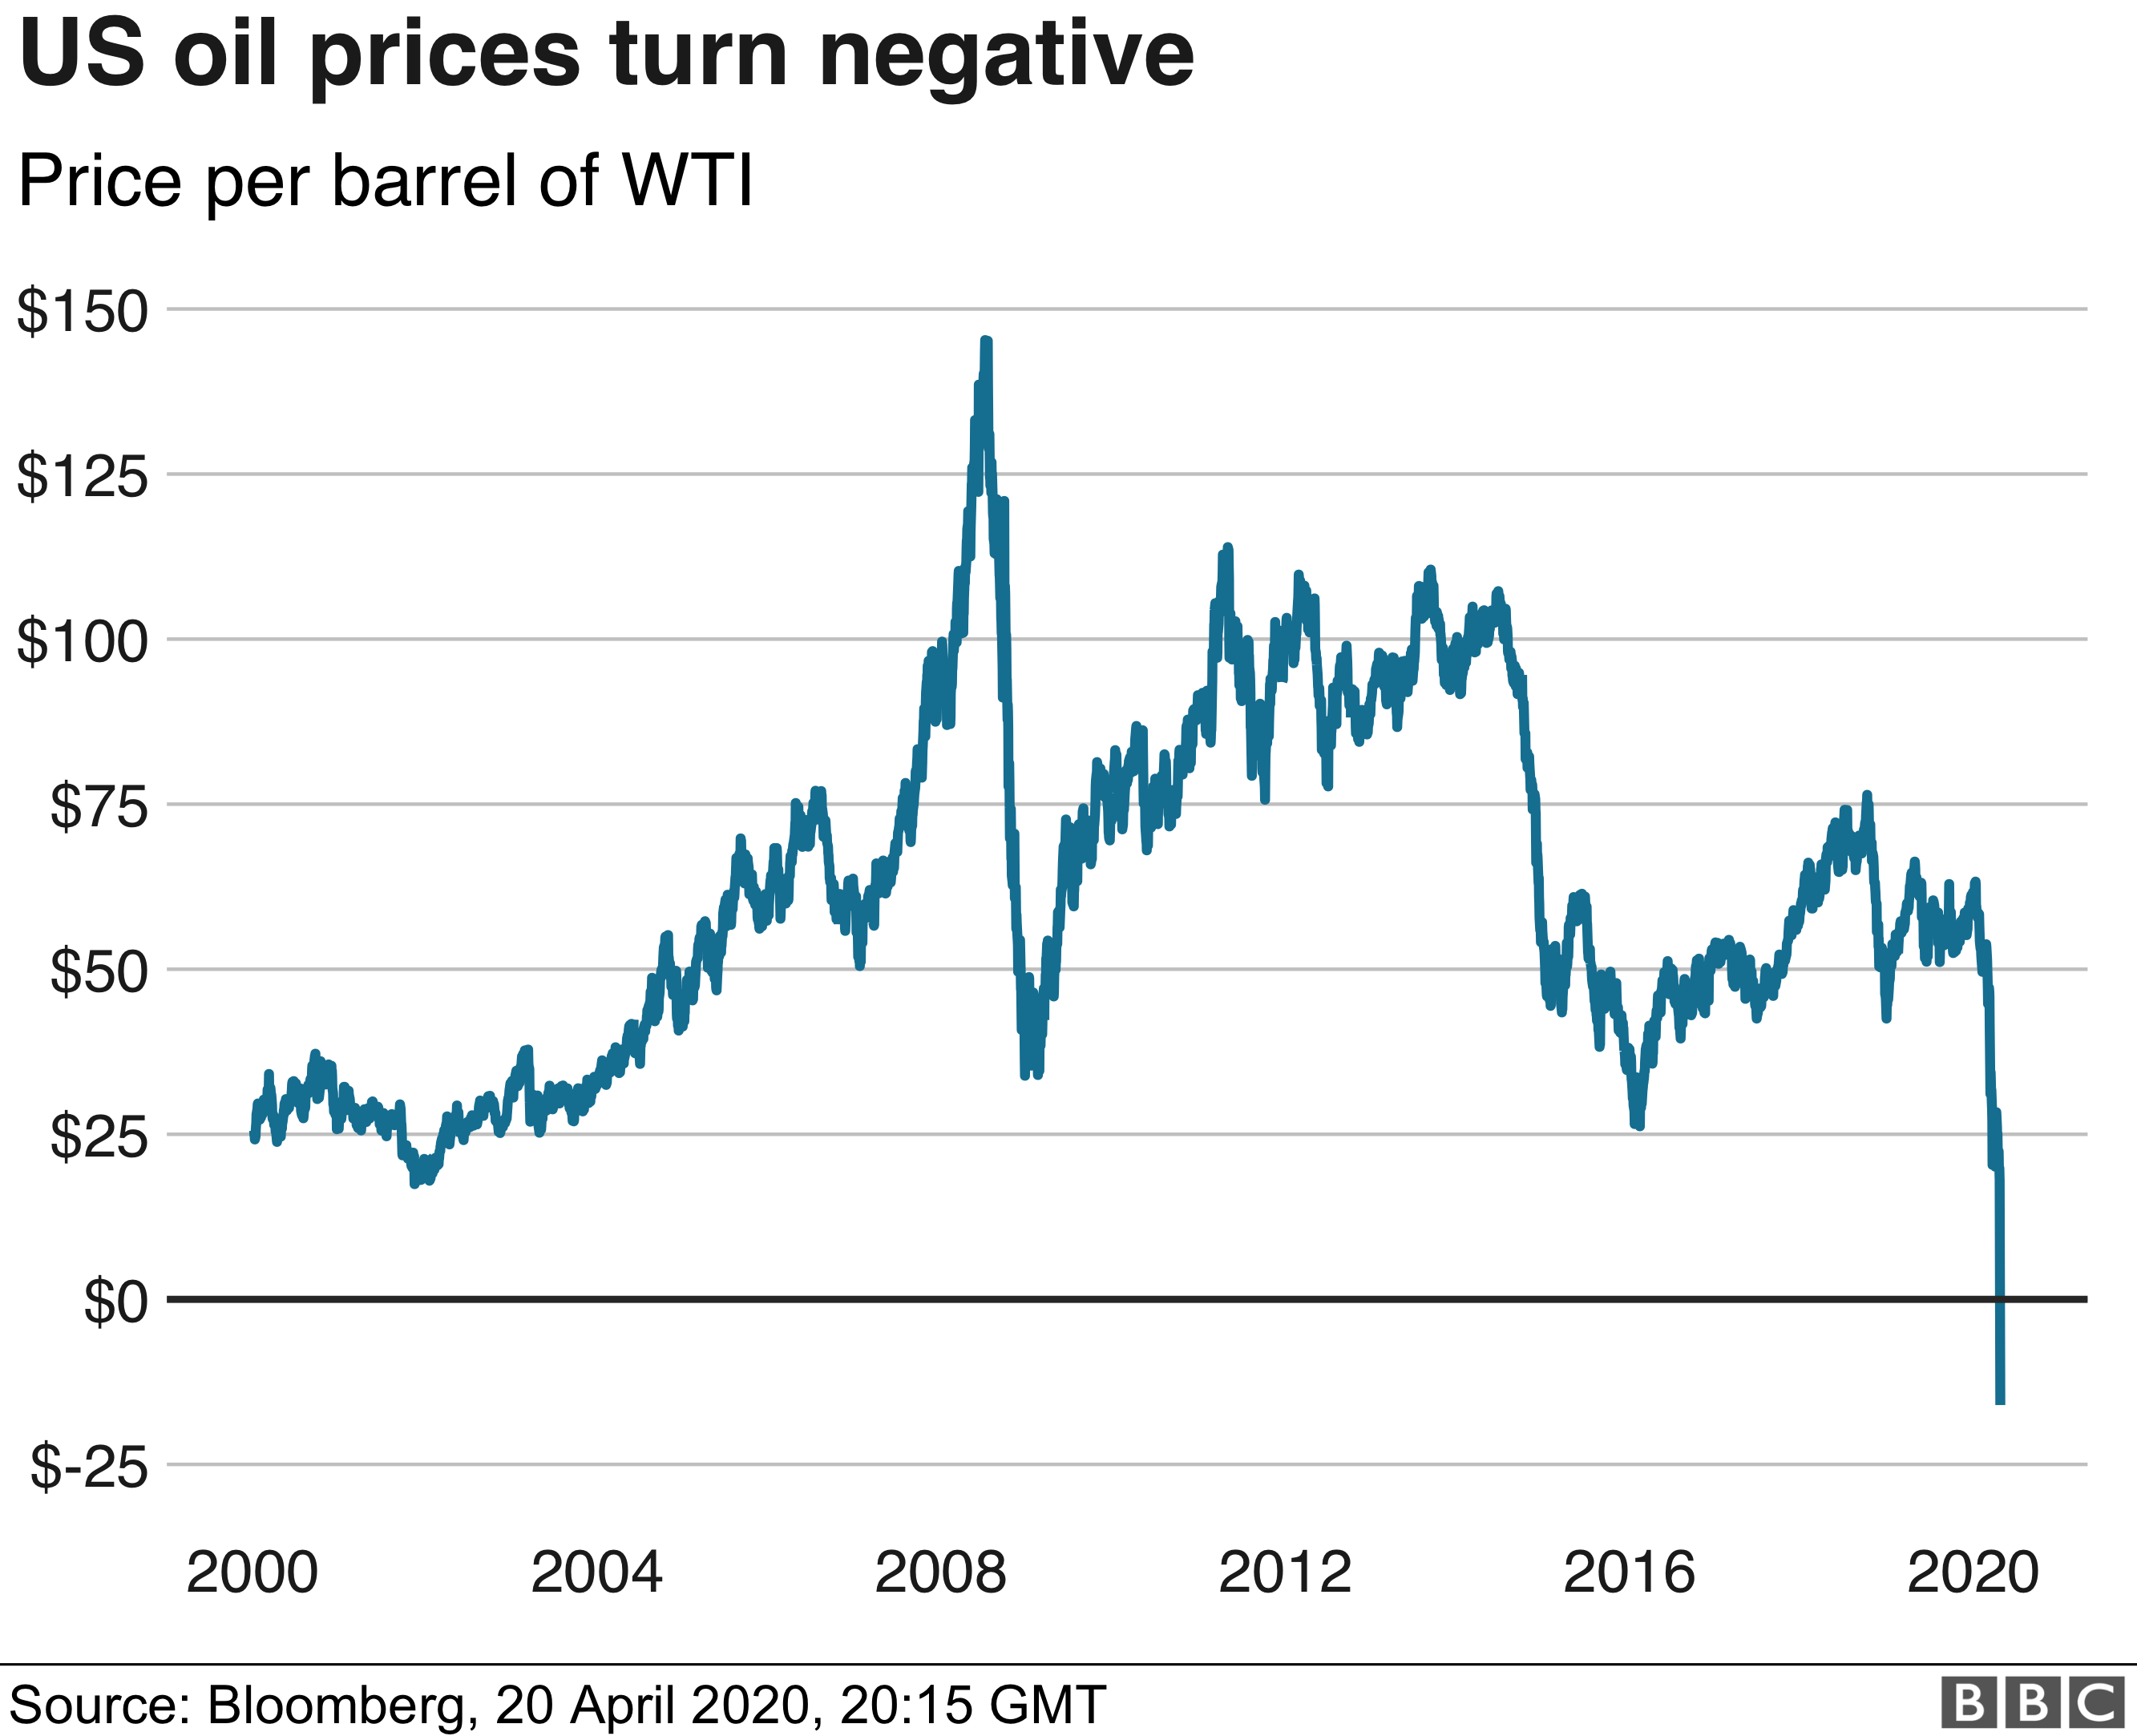 Oil price chart from 2000 to 2020